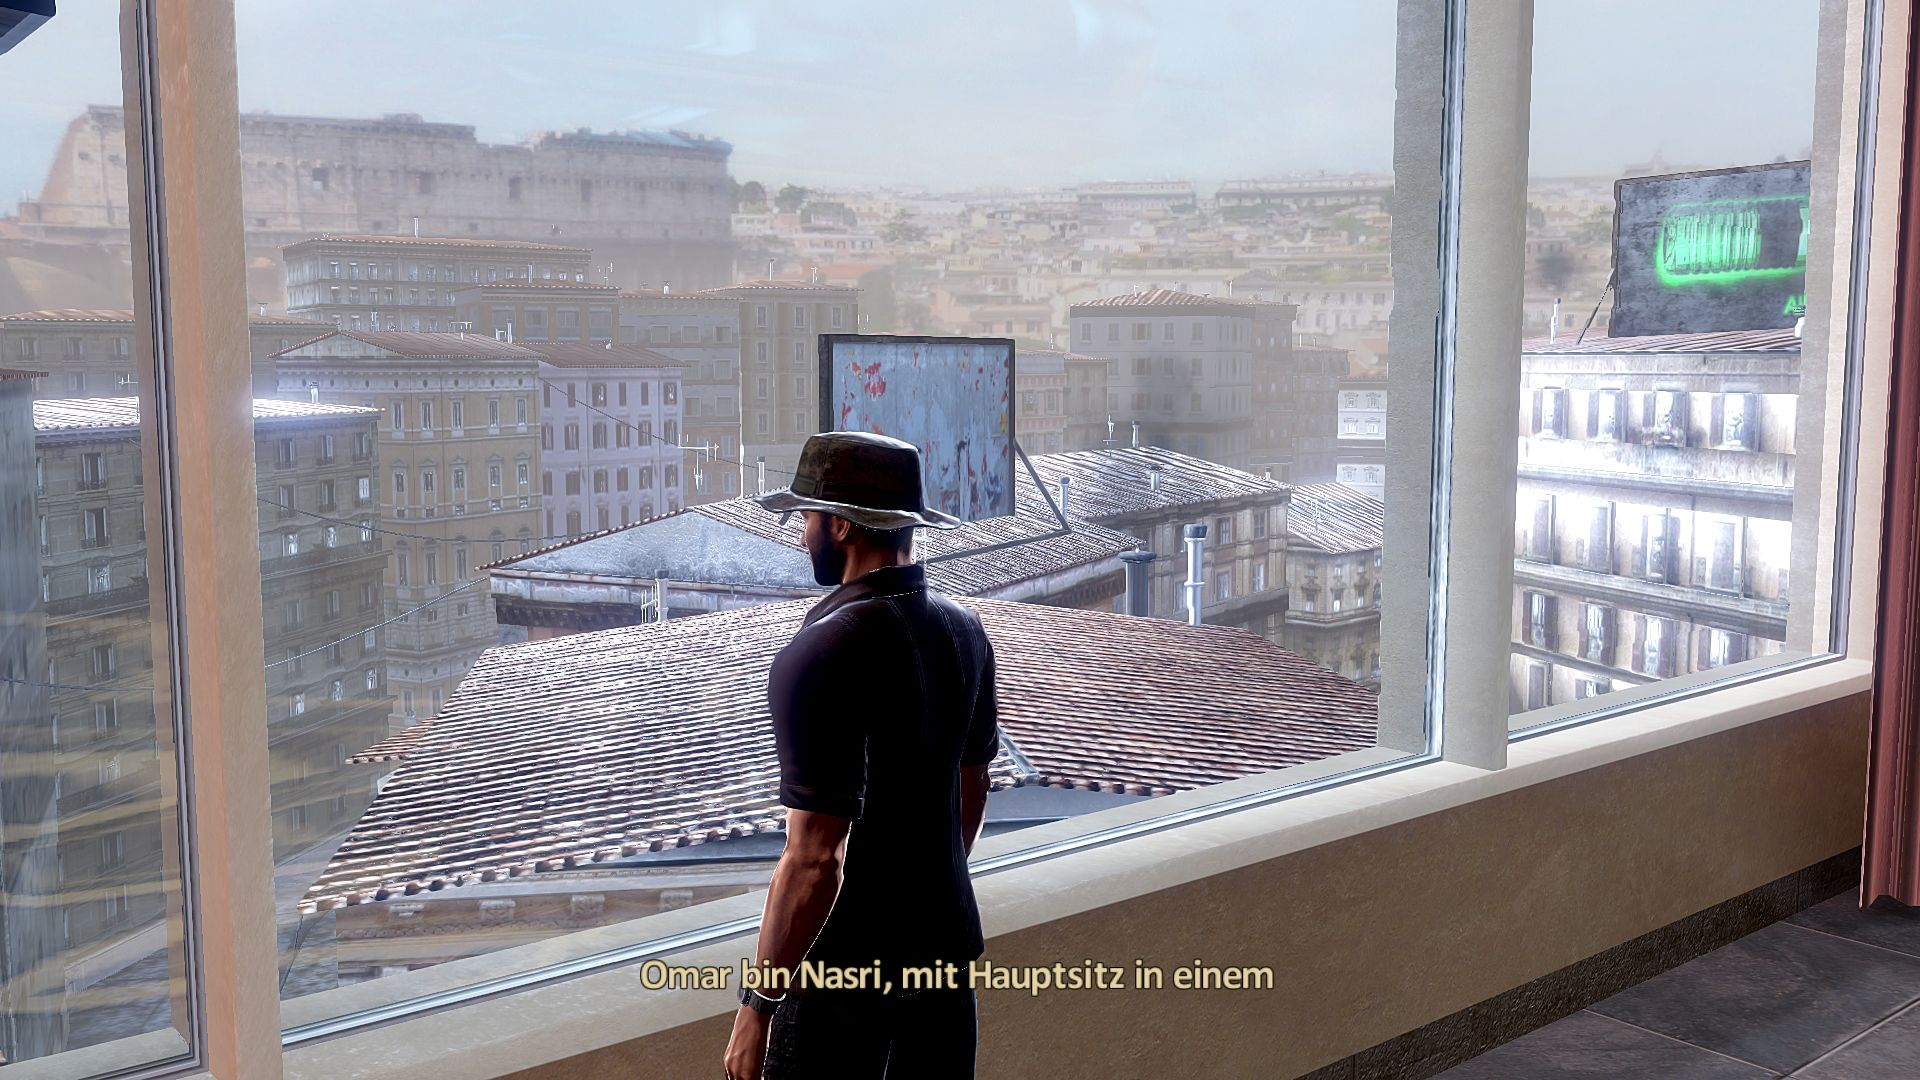 Alpha Protocol Windows Looking out the window of the safehouse in Rome.